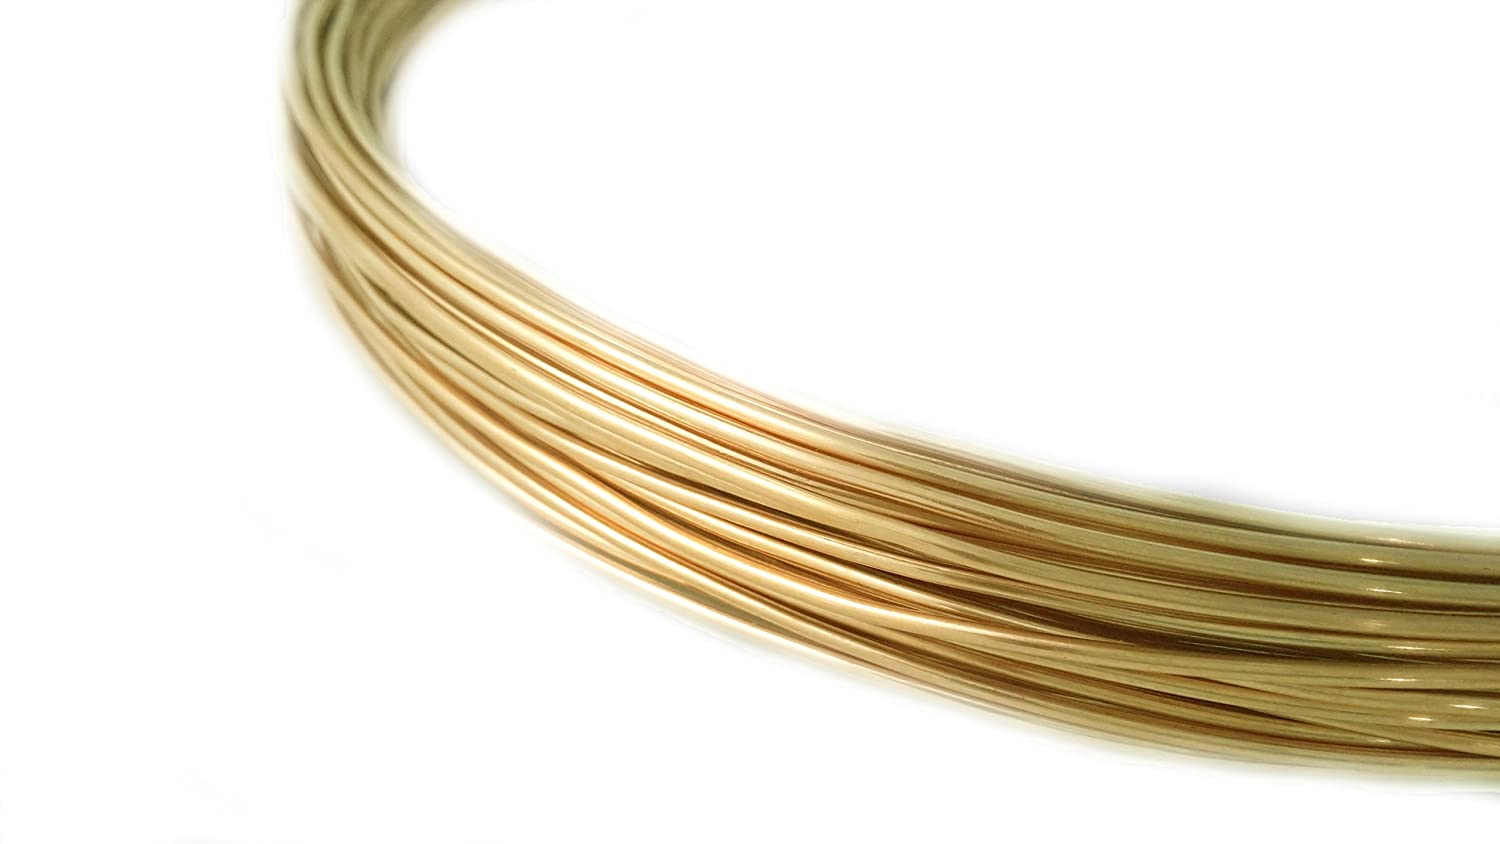 1 Ounce Dead Soft 6 Ft Solid Yellow Brass Wire 14 Gauge Round from Craft Wire